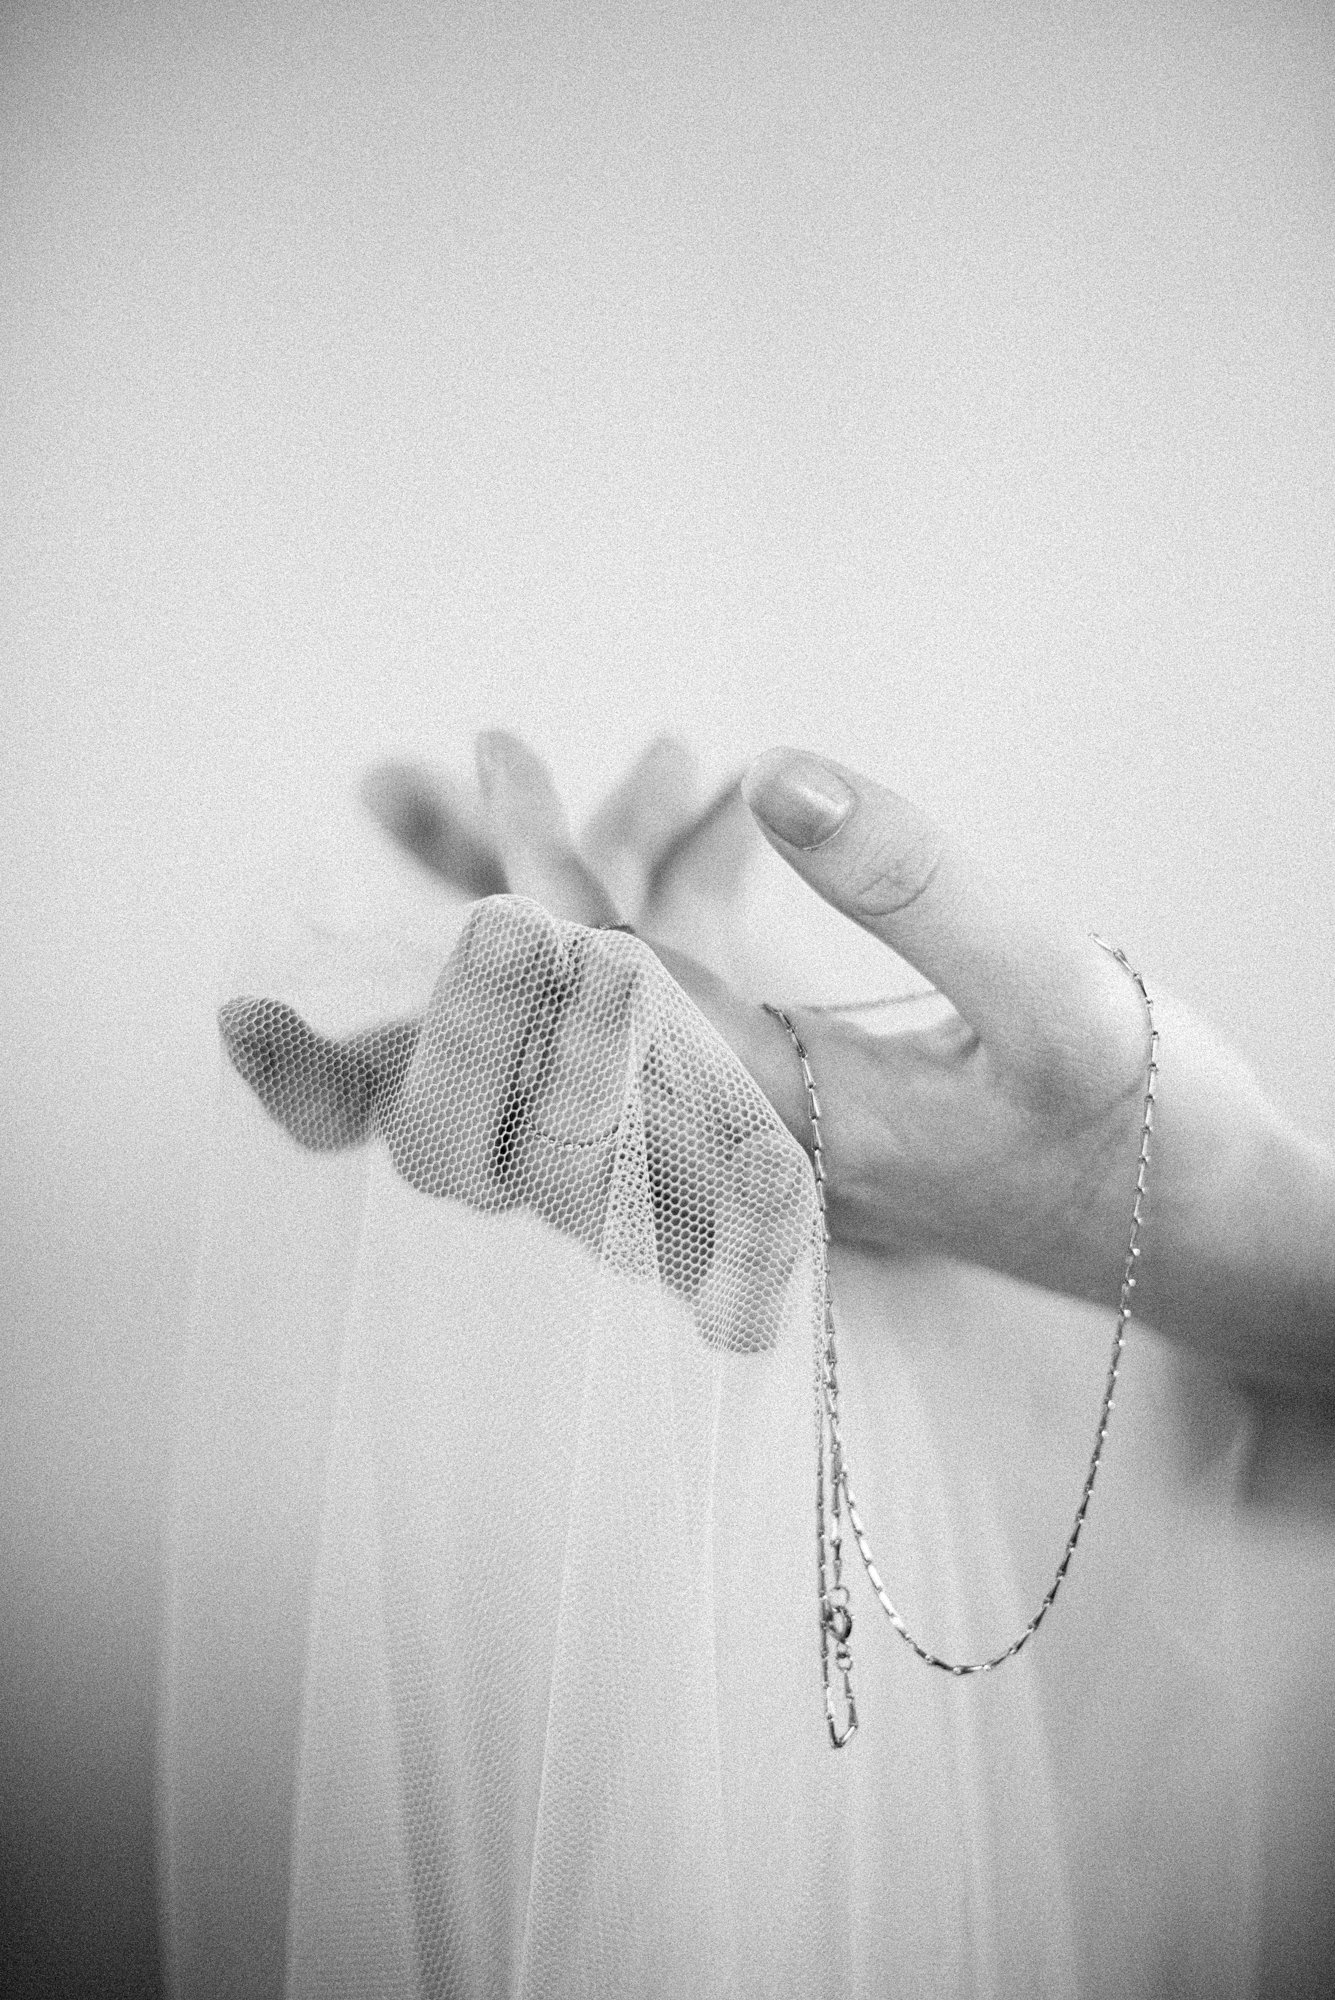 Alexandra-Elise-Photography-Ali-Reed-New-York-Film-Wedding-Photographer-SIBO-Designs-Hands-022